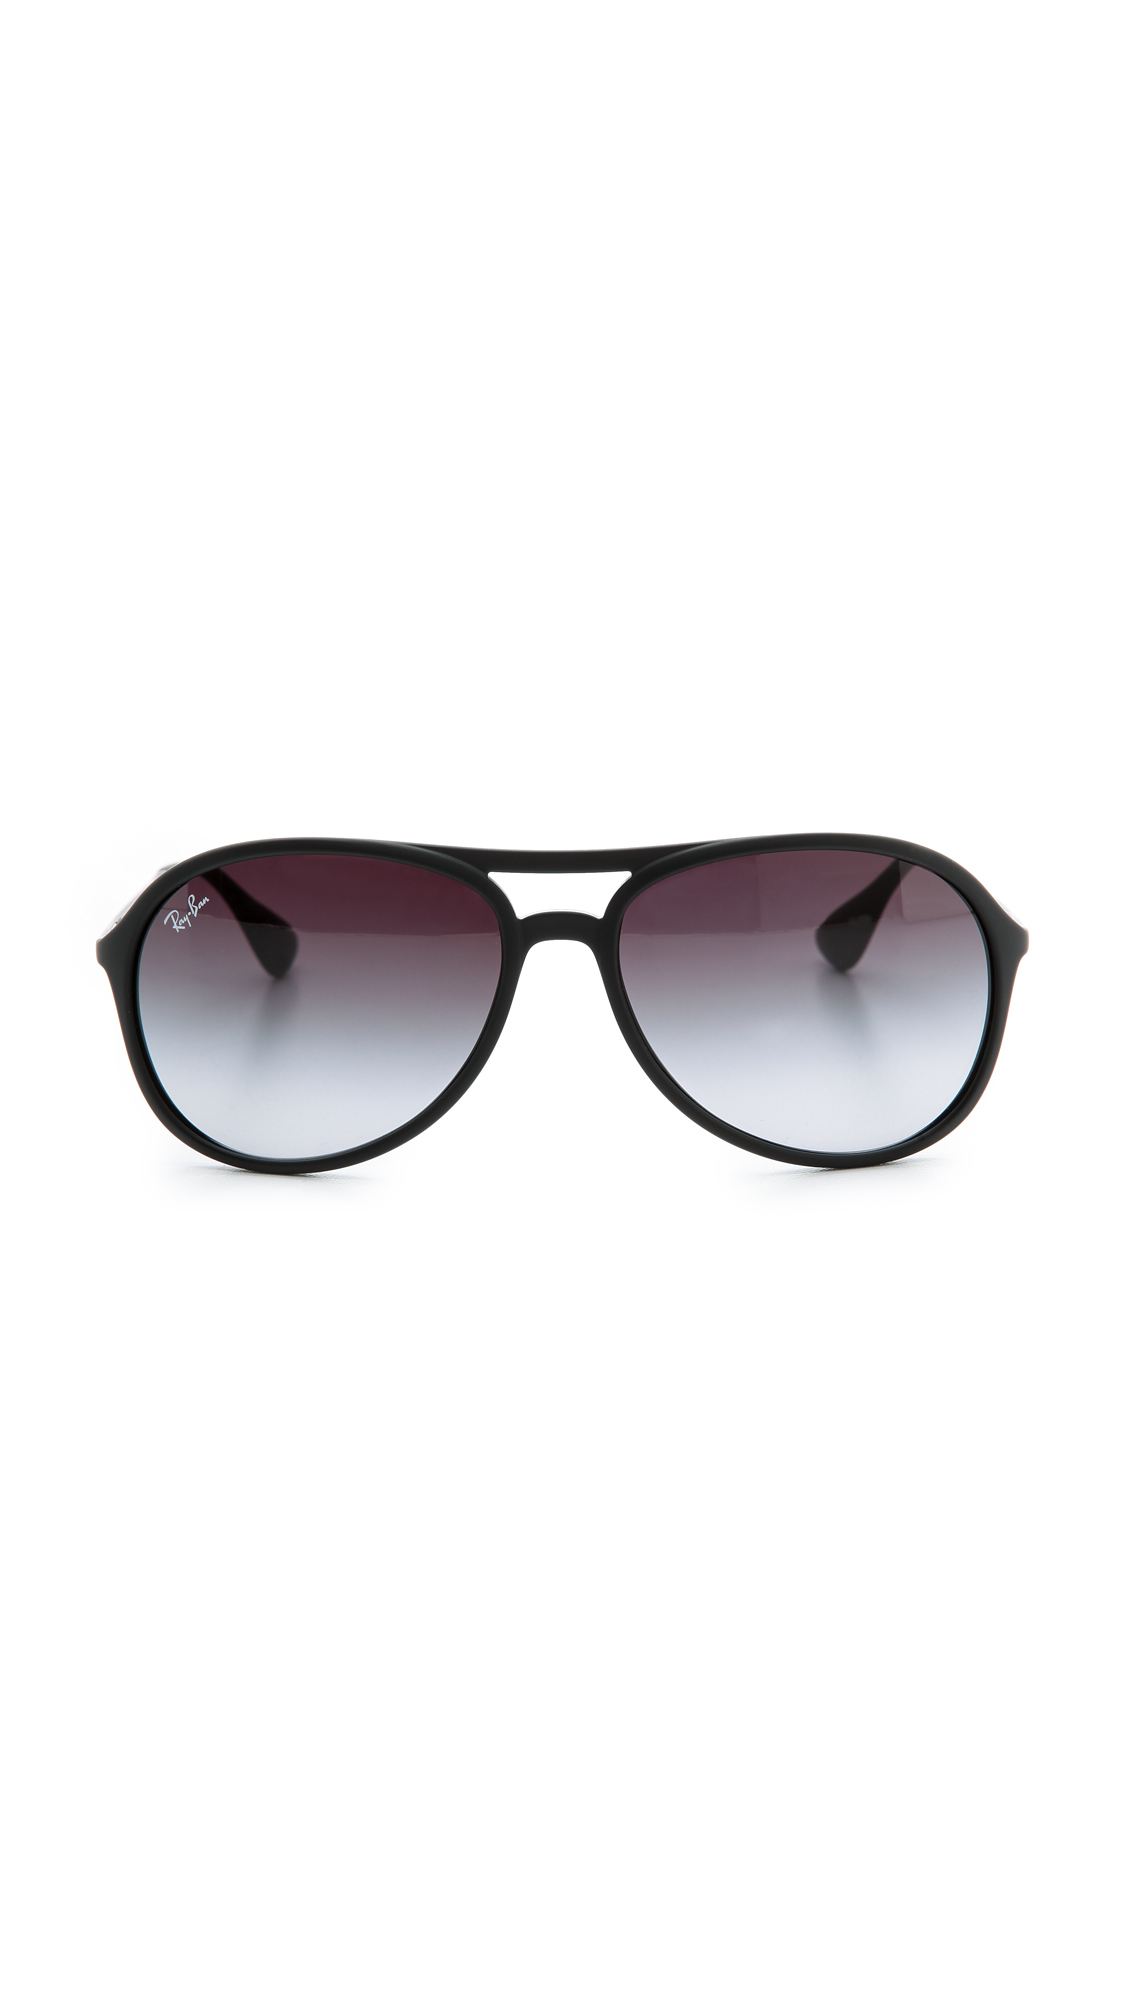 b616856388 Ray-Ban Youngster Rubber Aviator Sunglasses in Black - Lyst